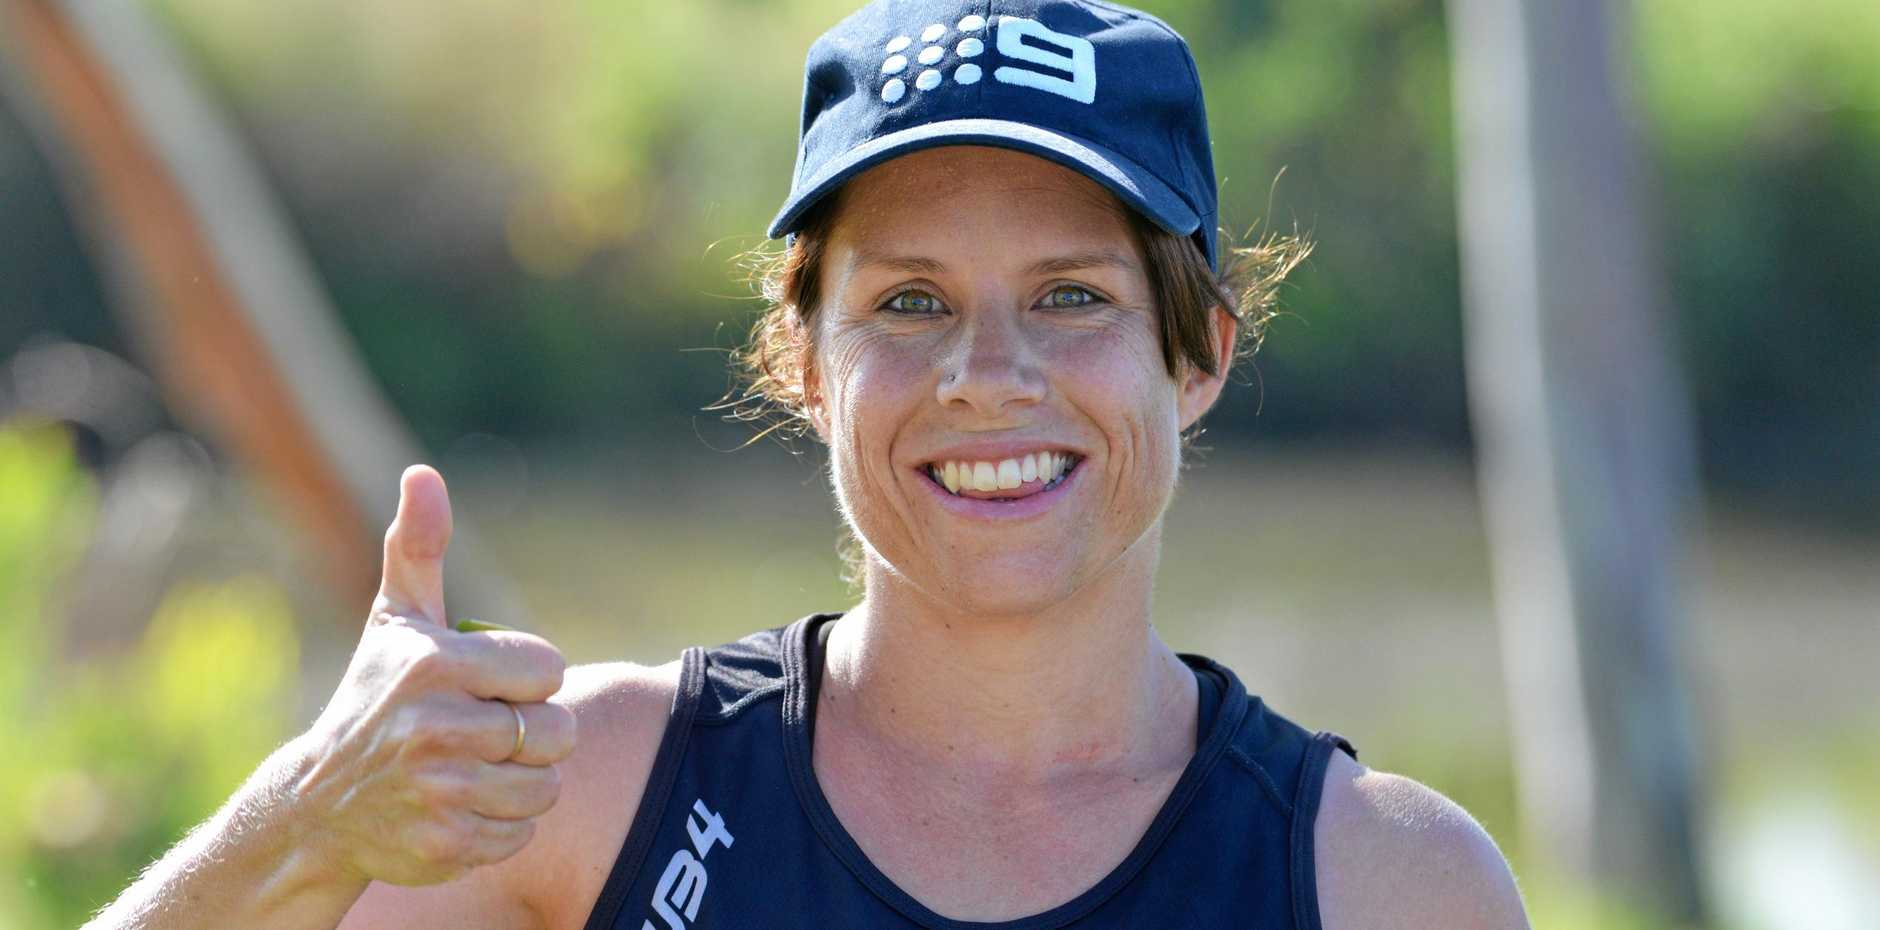 A GOOD RUN: Kym O'Leary was first woman home at the New Year's Day Warwick parkrun.